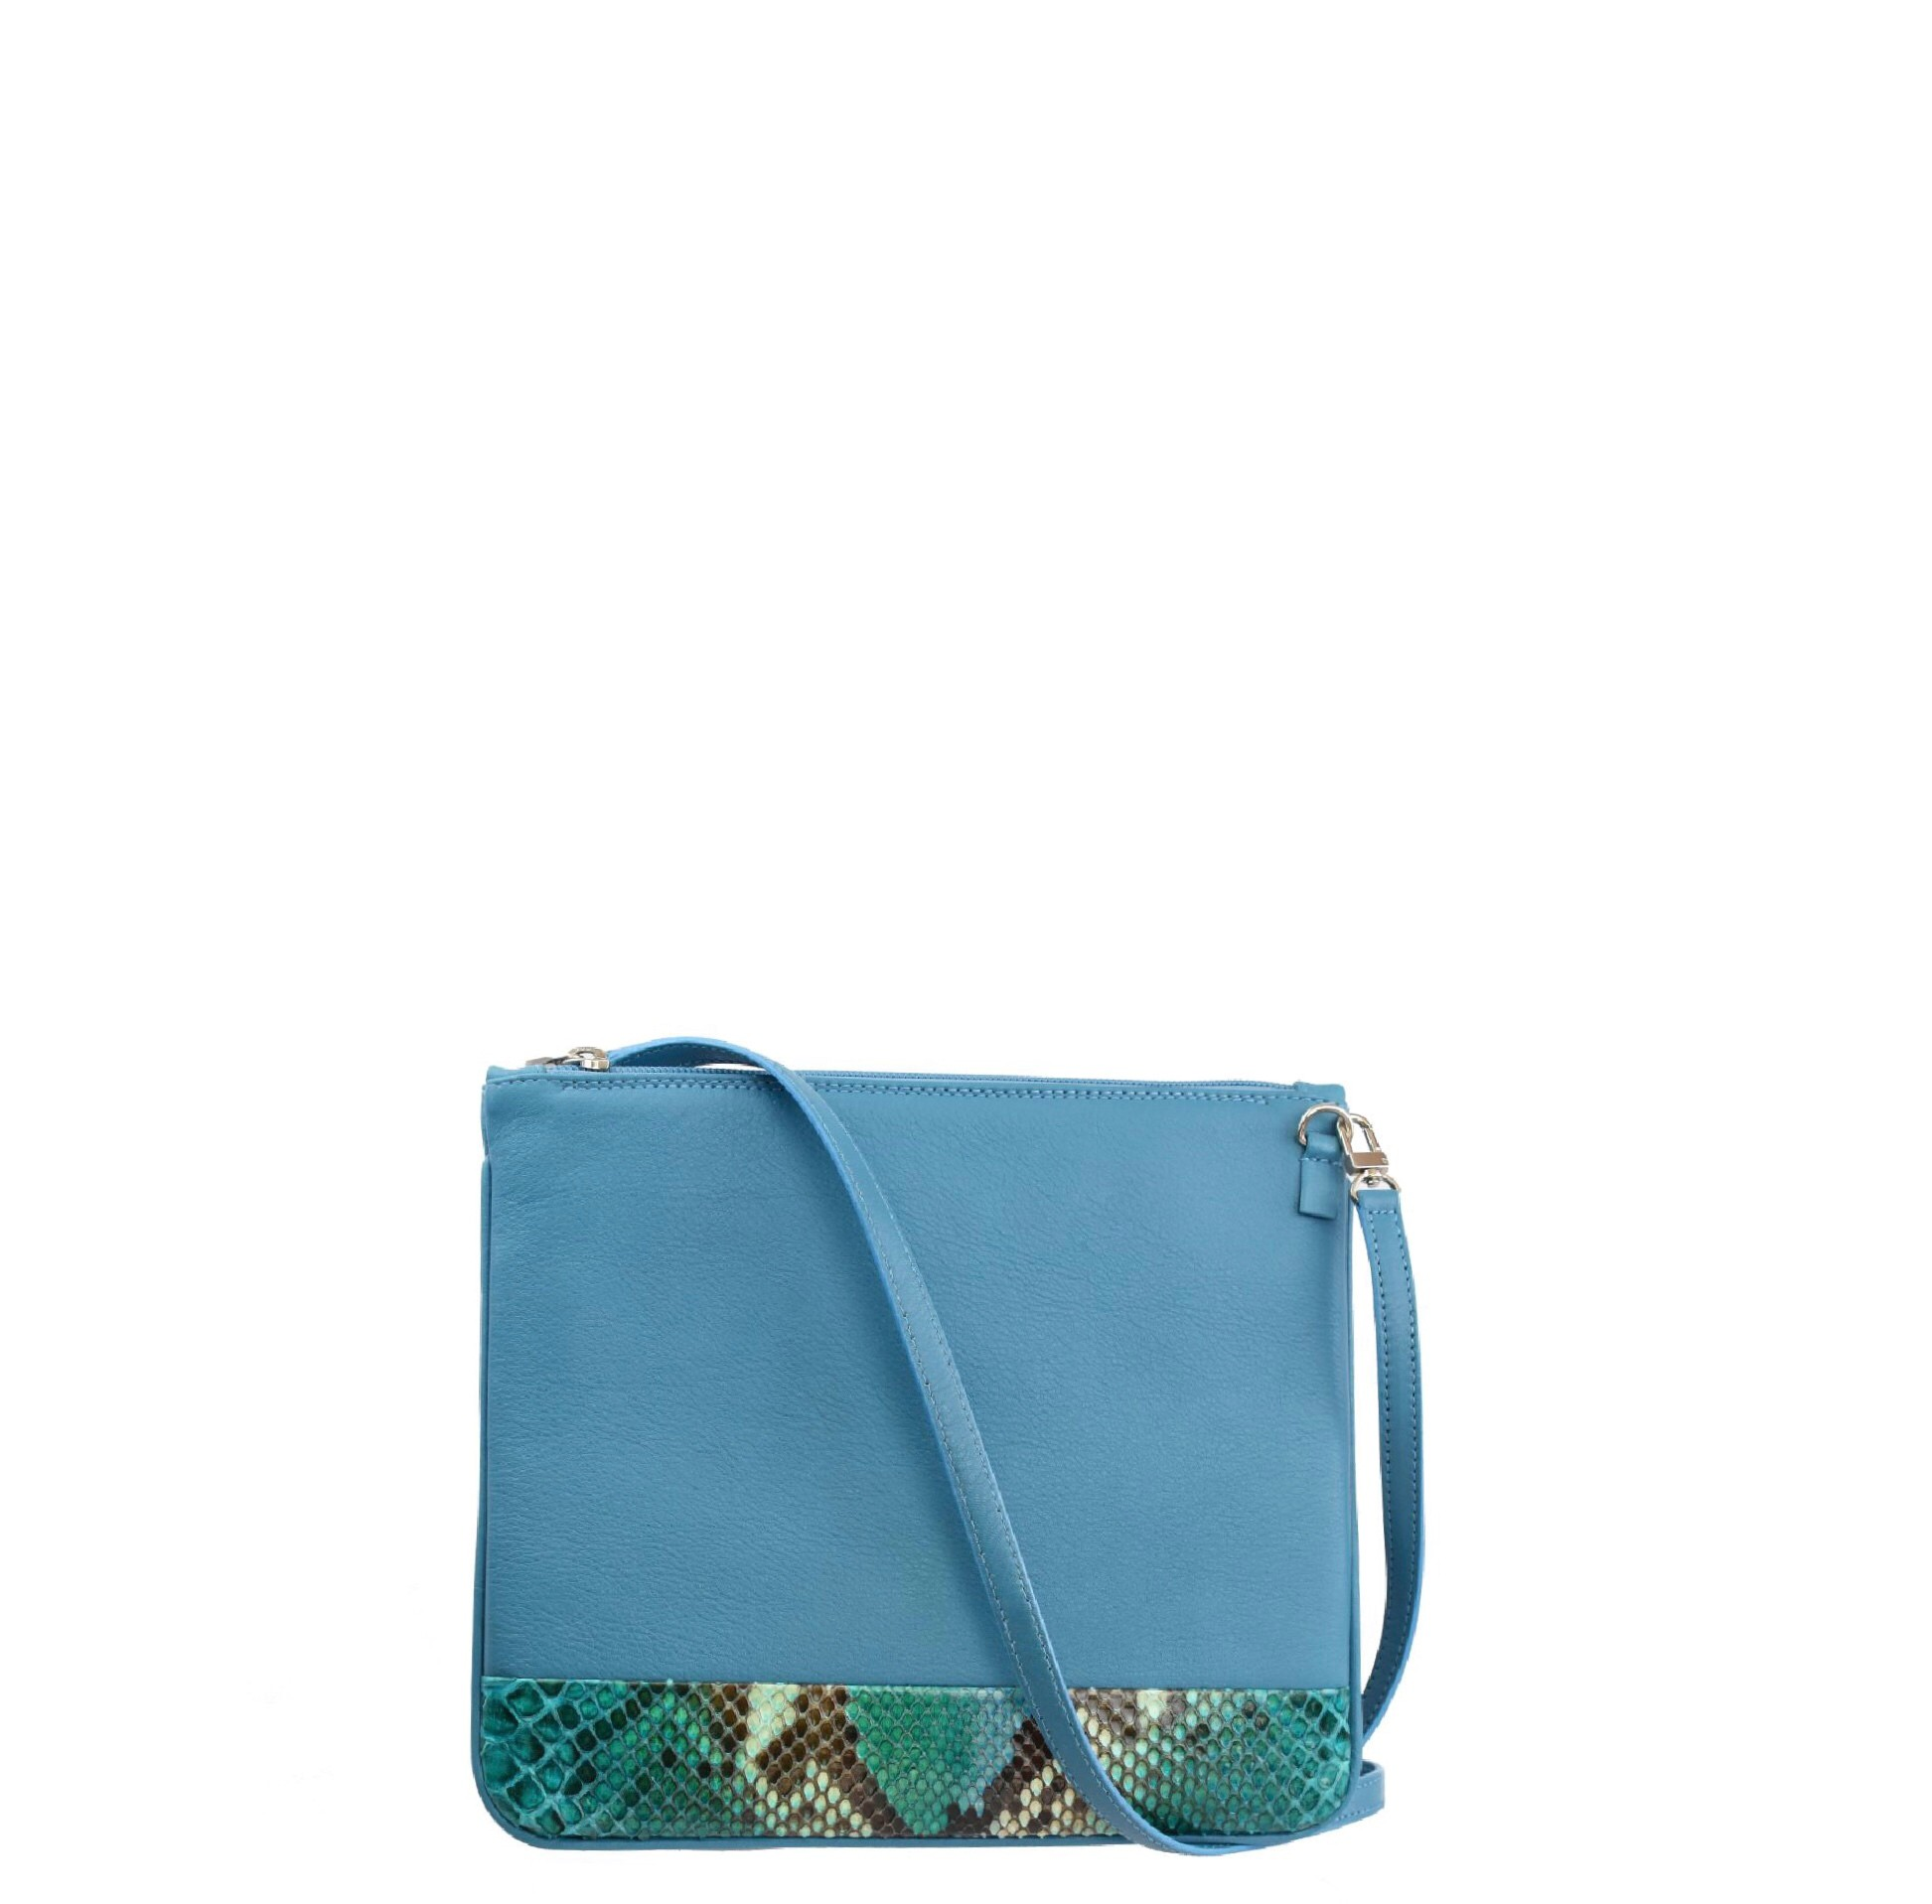 Palma Blue Crossbody tara's handbags